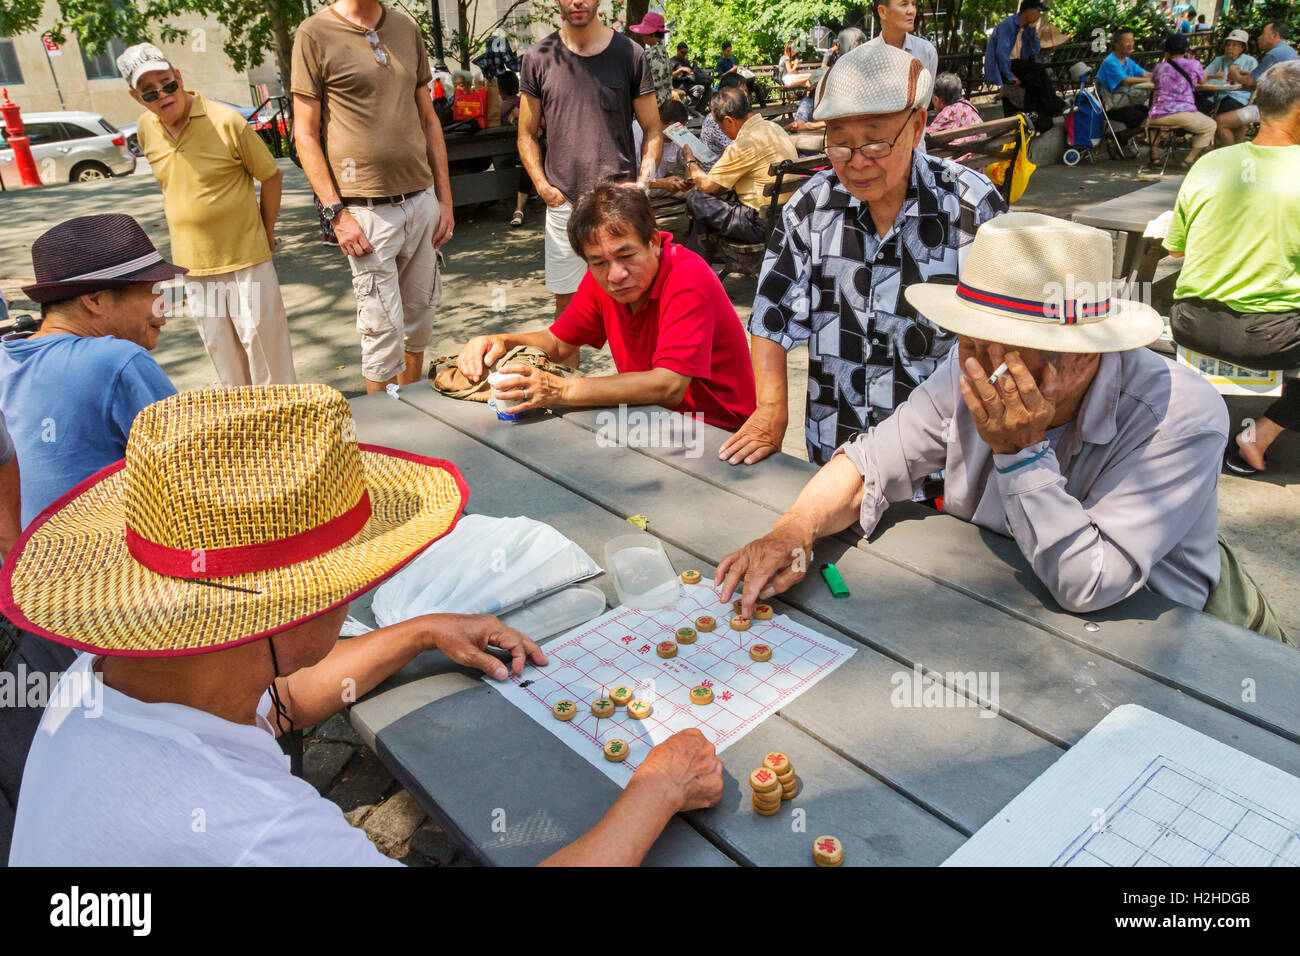 A group of Chinese Americans in Columbus Park in Chinatown, New York City playing Chinese Chess, also known as, - Stock Image